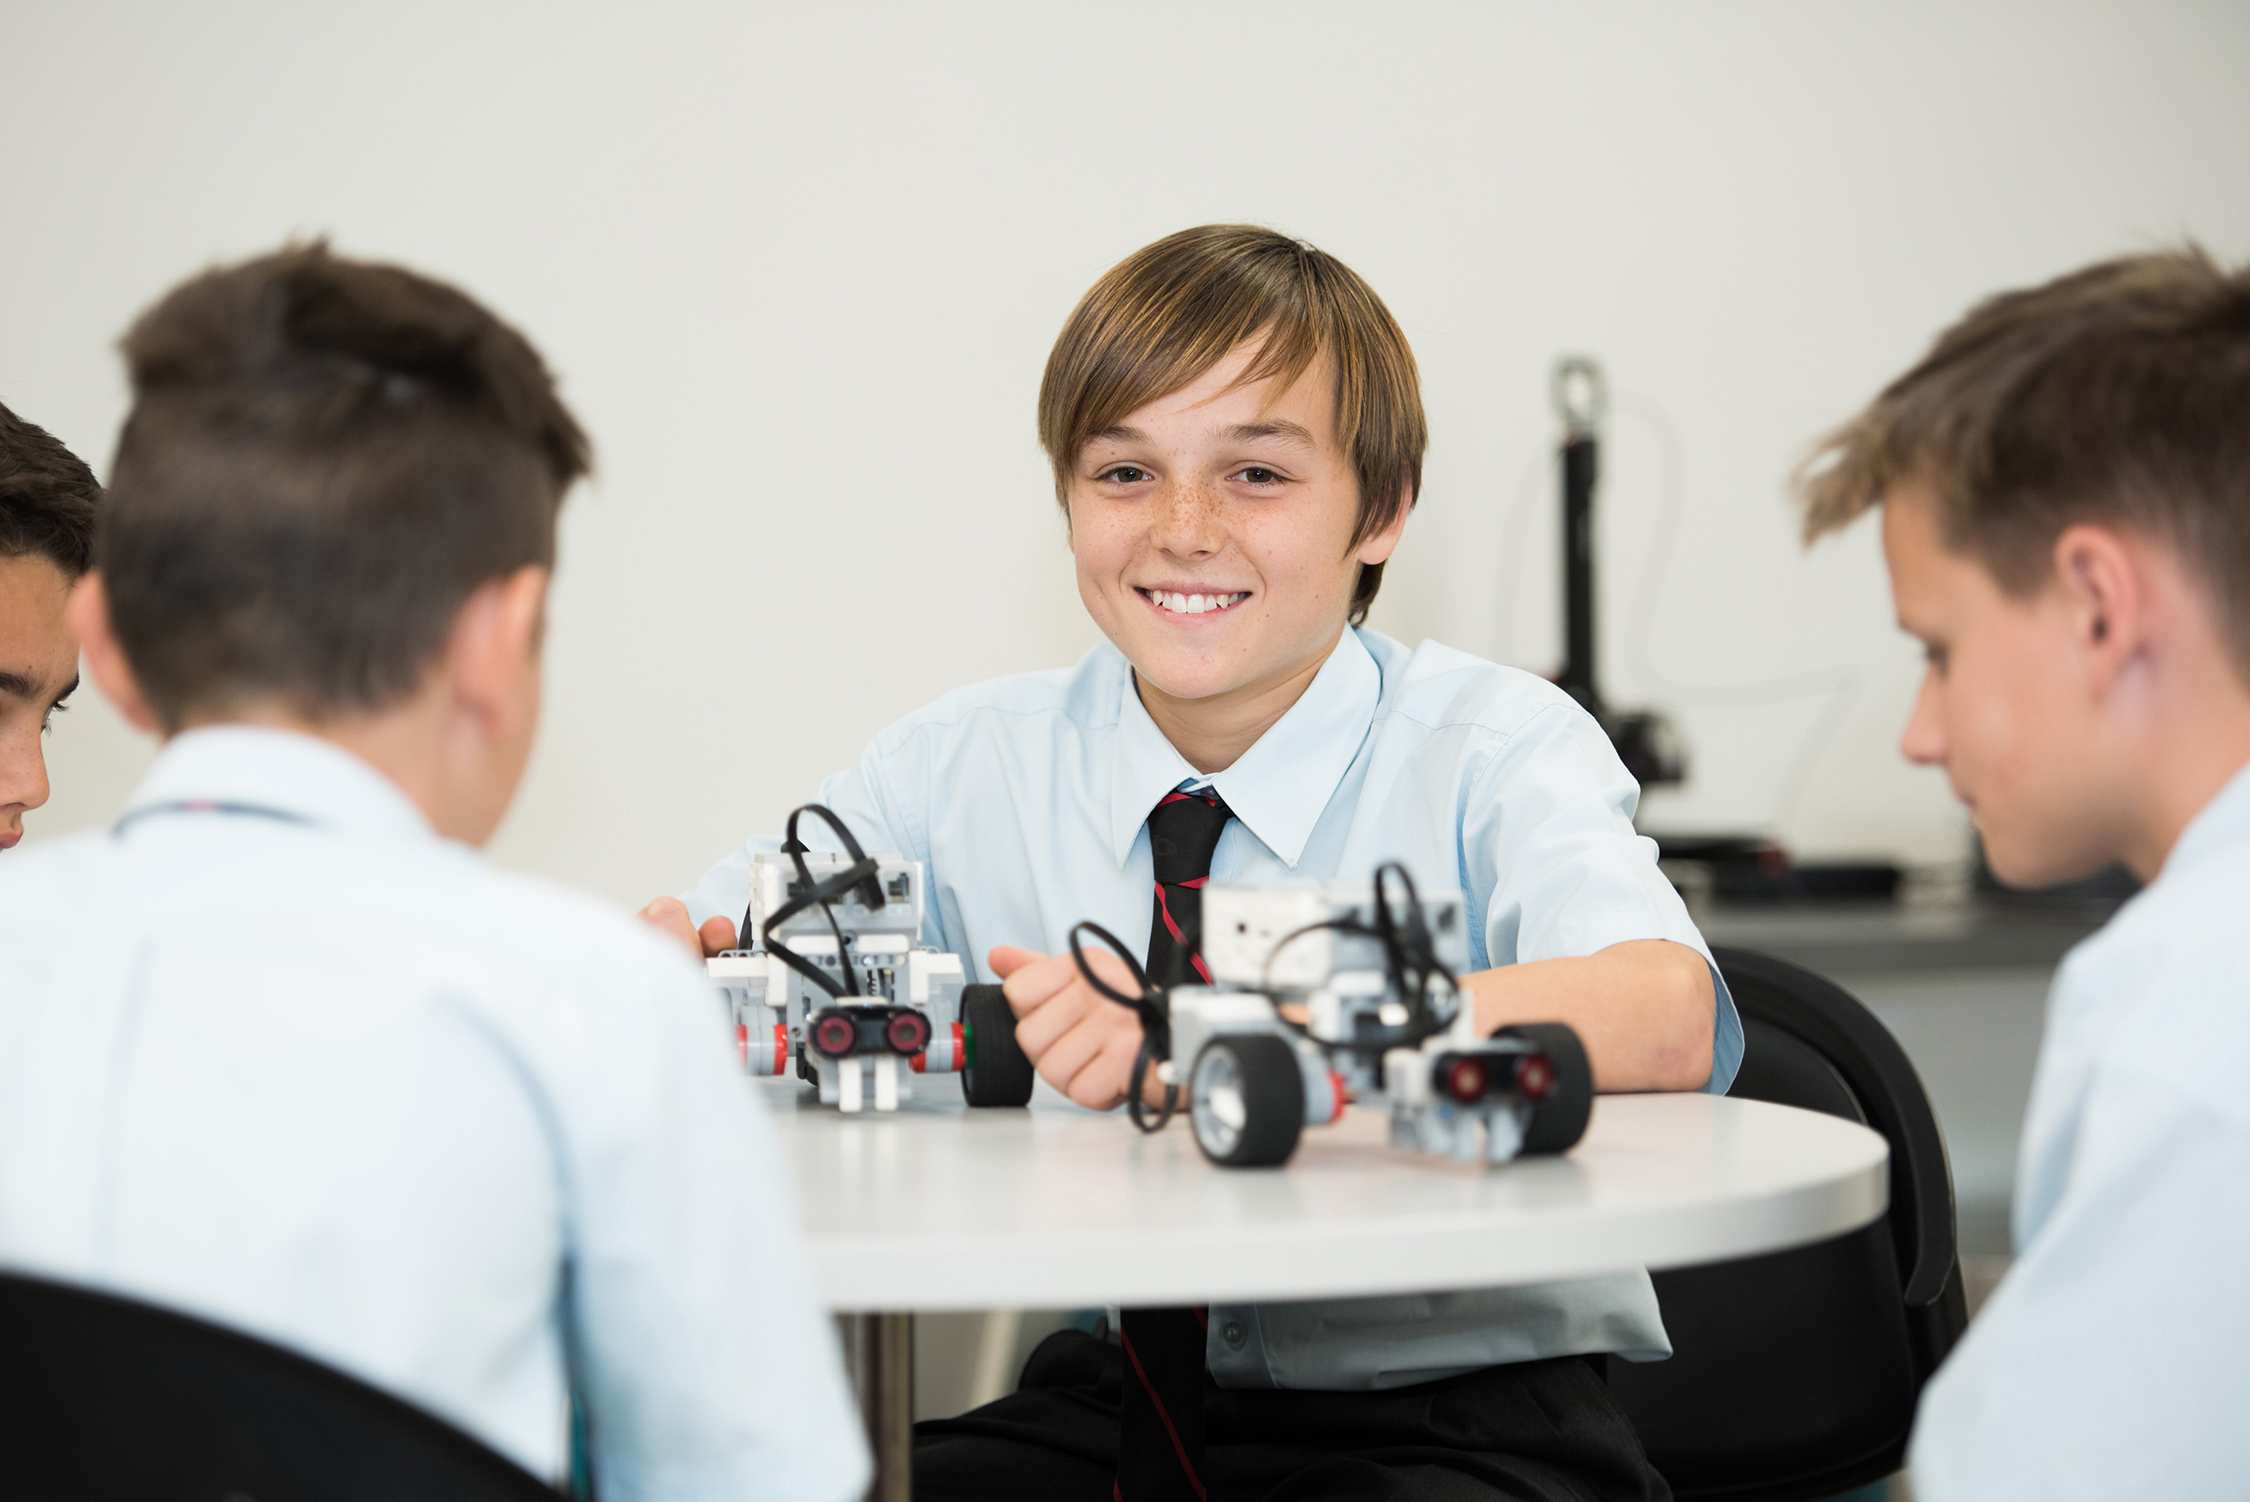 A student smiles at the camera while working on a robotics project with others